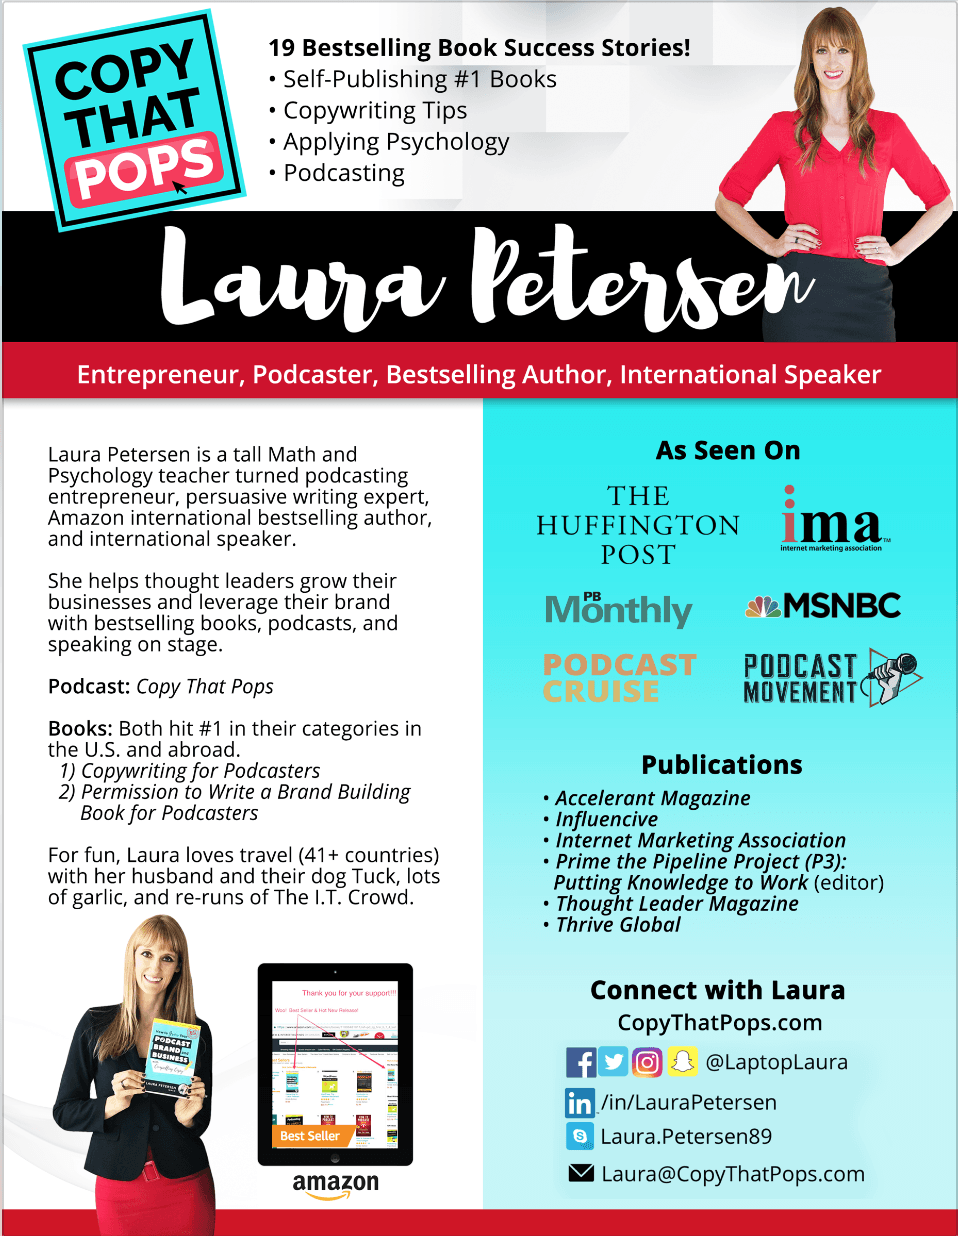 laura petersen 1-sheeter about me - podcasting speaking